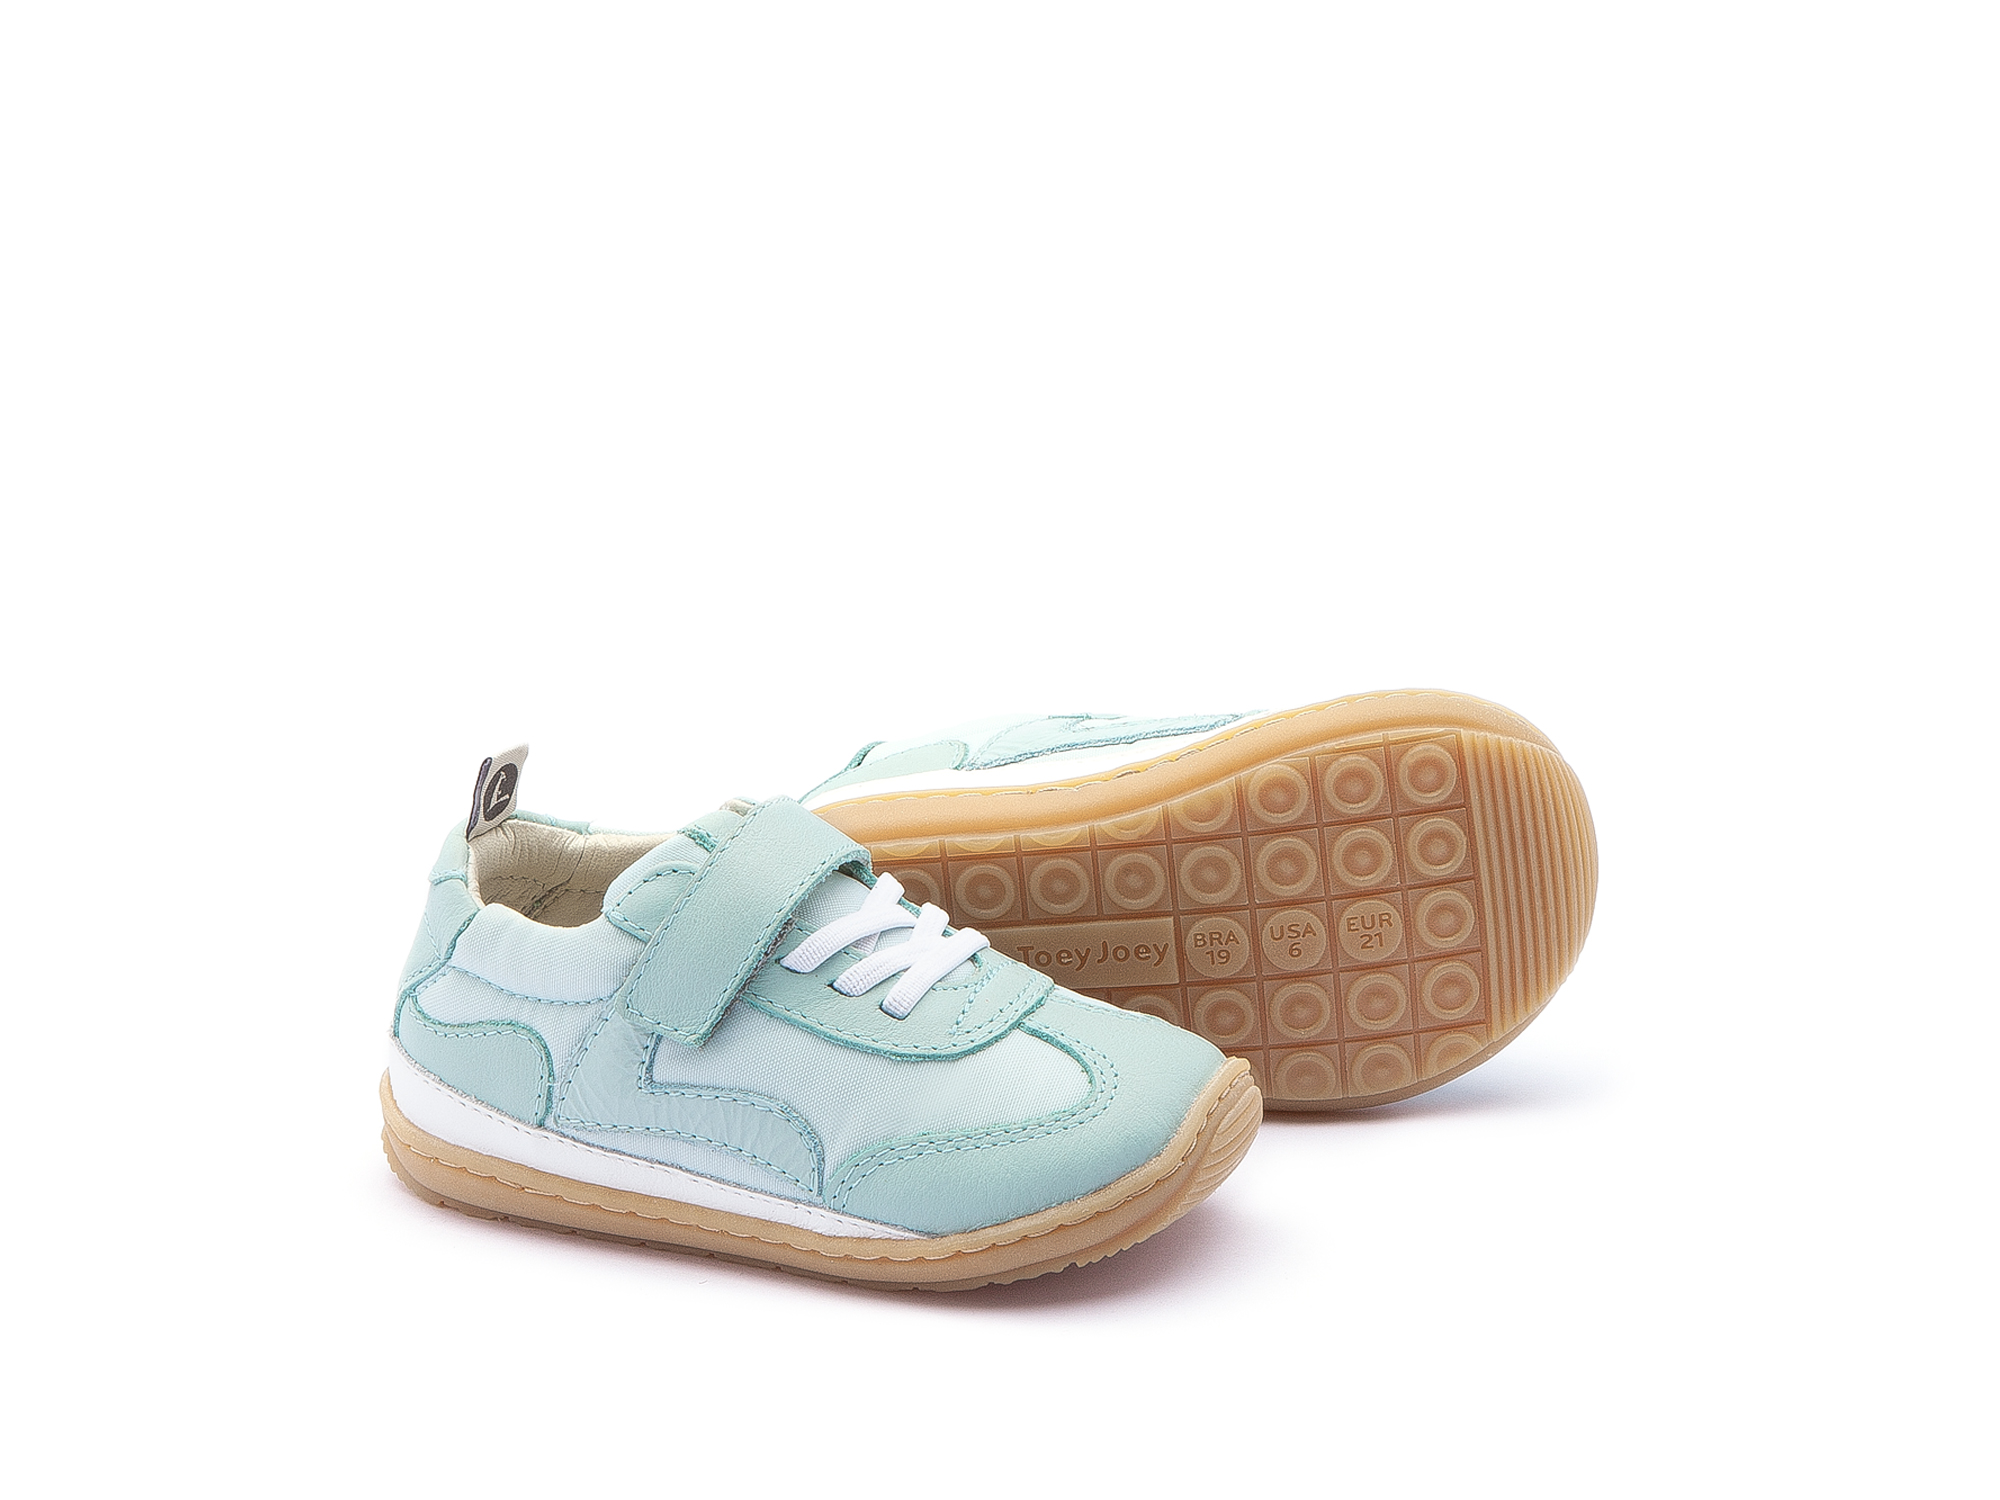 Tênis Starty Light Blue Nylon/ Aquamarine Baby 0 à 2 anos - 2